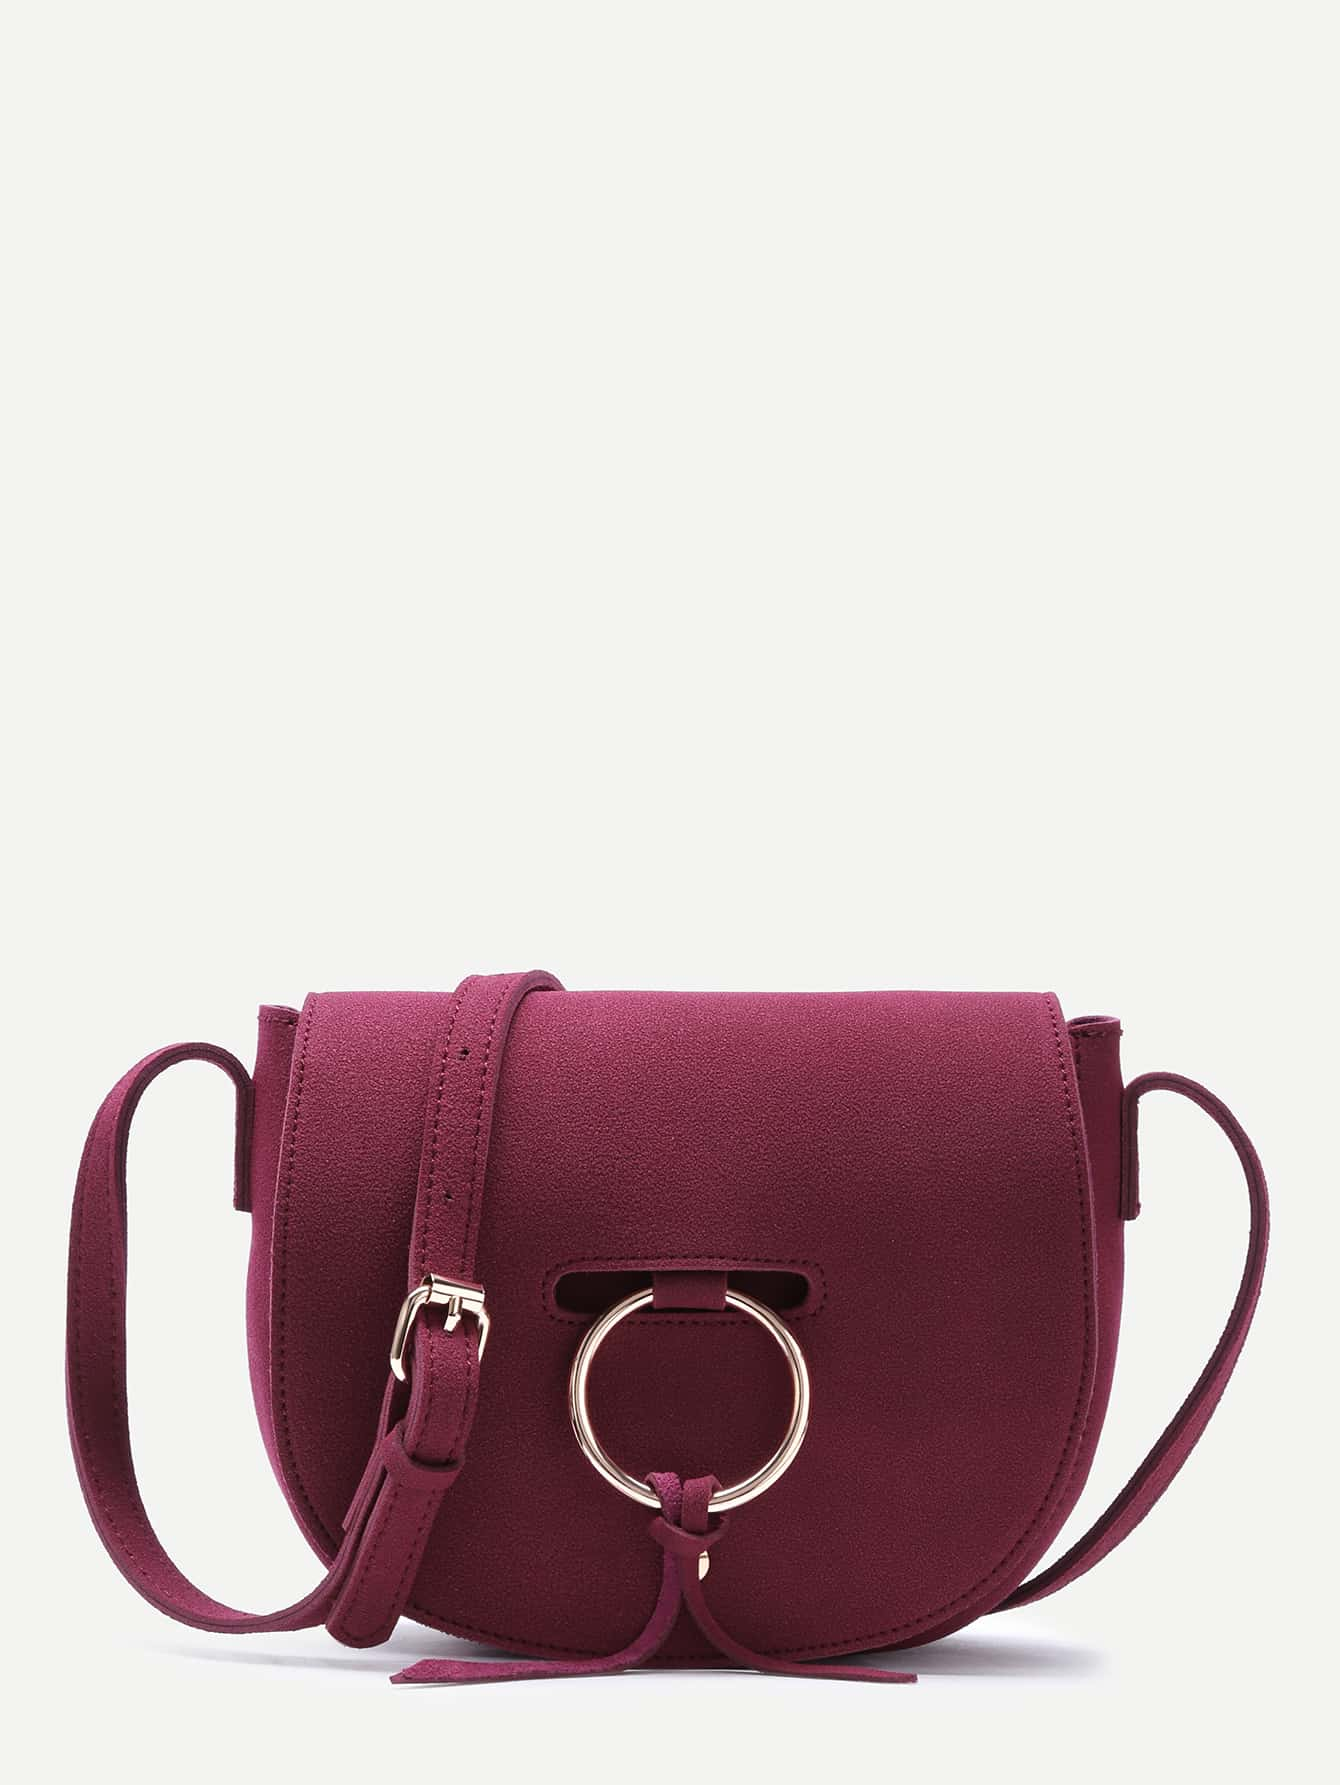 Red Nubuck Leather Metal Ring Flap Saddle Bag Image